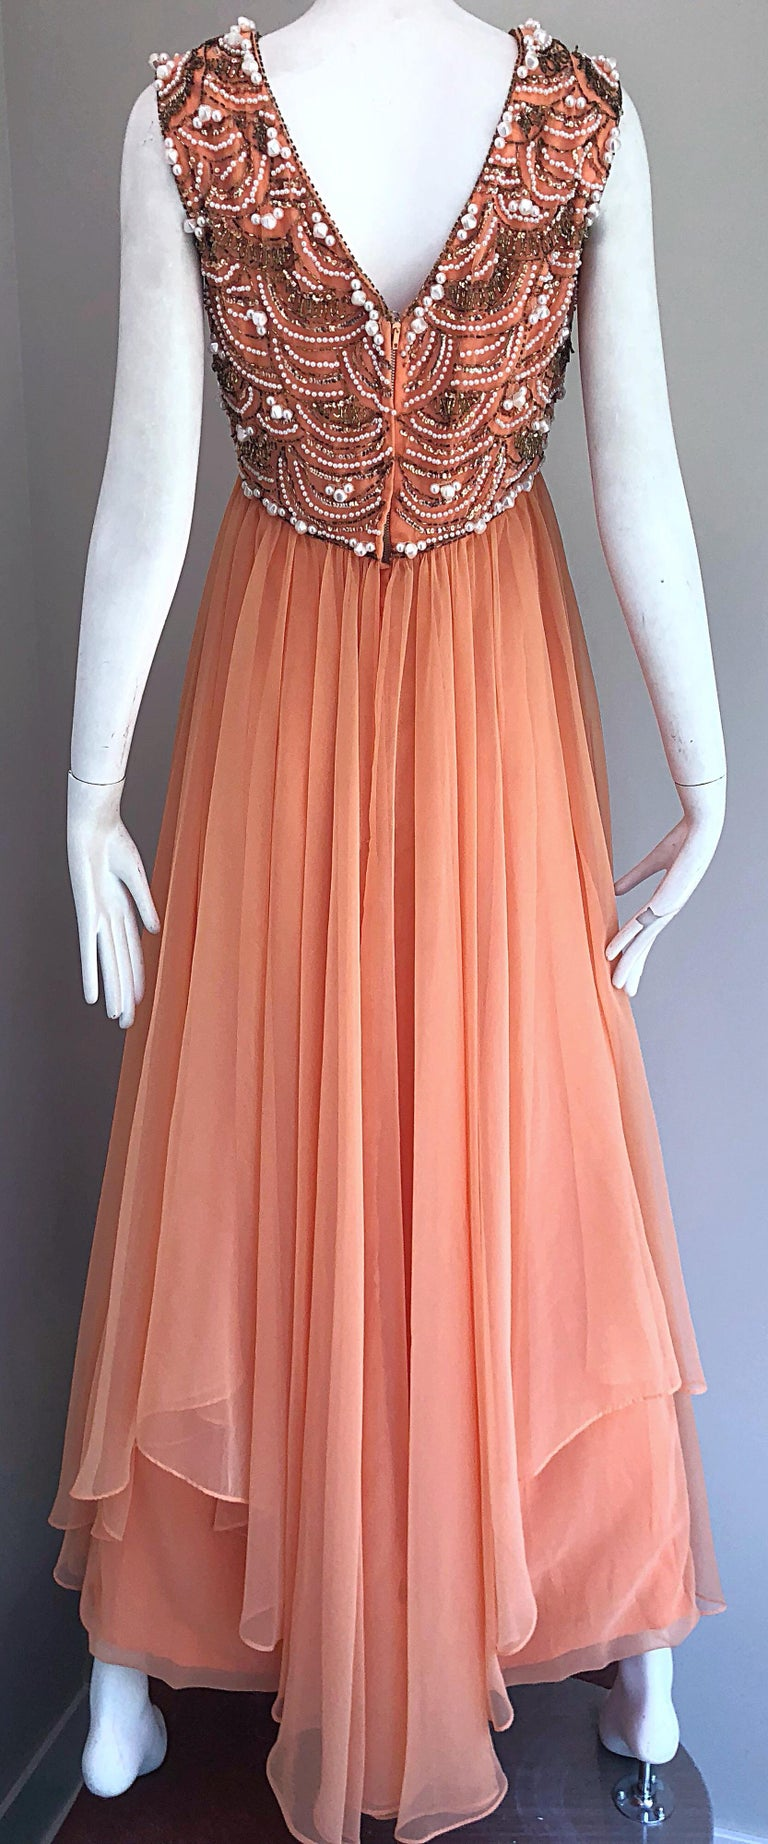 1960s Isabell Gerhart Sherbet Coral Demi Couture Beaded Chiffon 60s Gown Dress For Sale 5